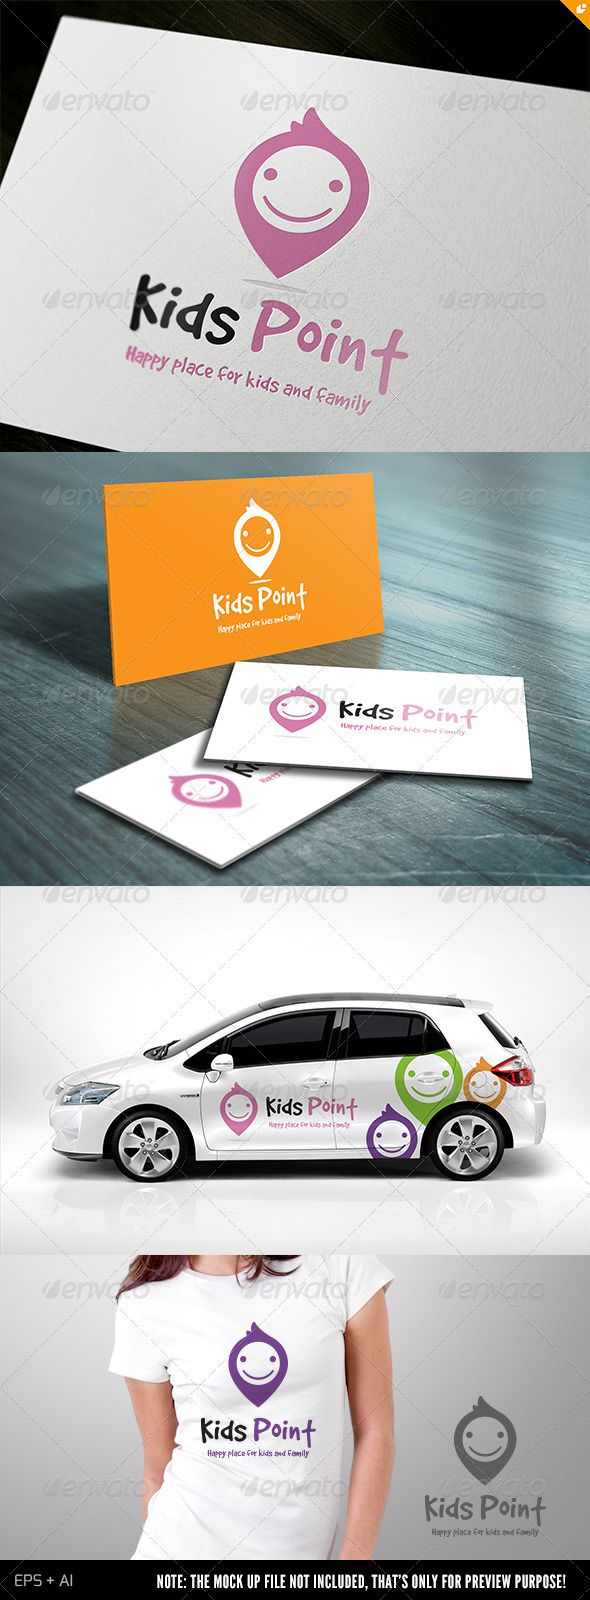 Kids Point  #GraphicRiver         This logo design for all creative business. Consulting, Excellent logo,simple and unique concept.  Logo Template Features   AI and EPS (Illustrator 10 EPS) 300PPI  CMYK  100% Scalable Vector Files  Easy to edit color / text  Ready to print  Font information at the help file    If you buy and like this logo, please remember to rate it. Thanks!     Created: 9July13 GraphicsFilesIncluded: VectorEPS #AIIllustrator Layered: No MinimumAdobeCSVersion: CS…